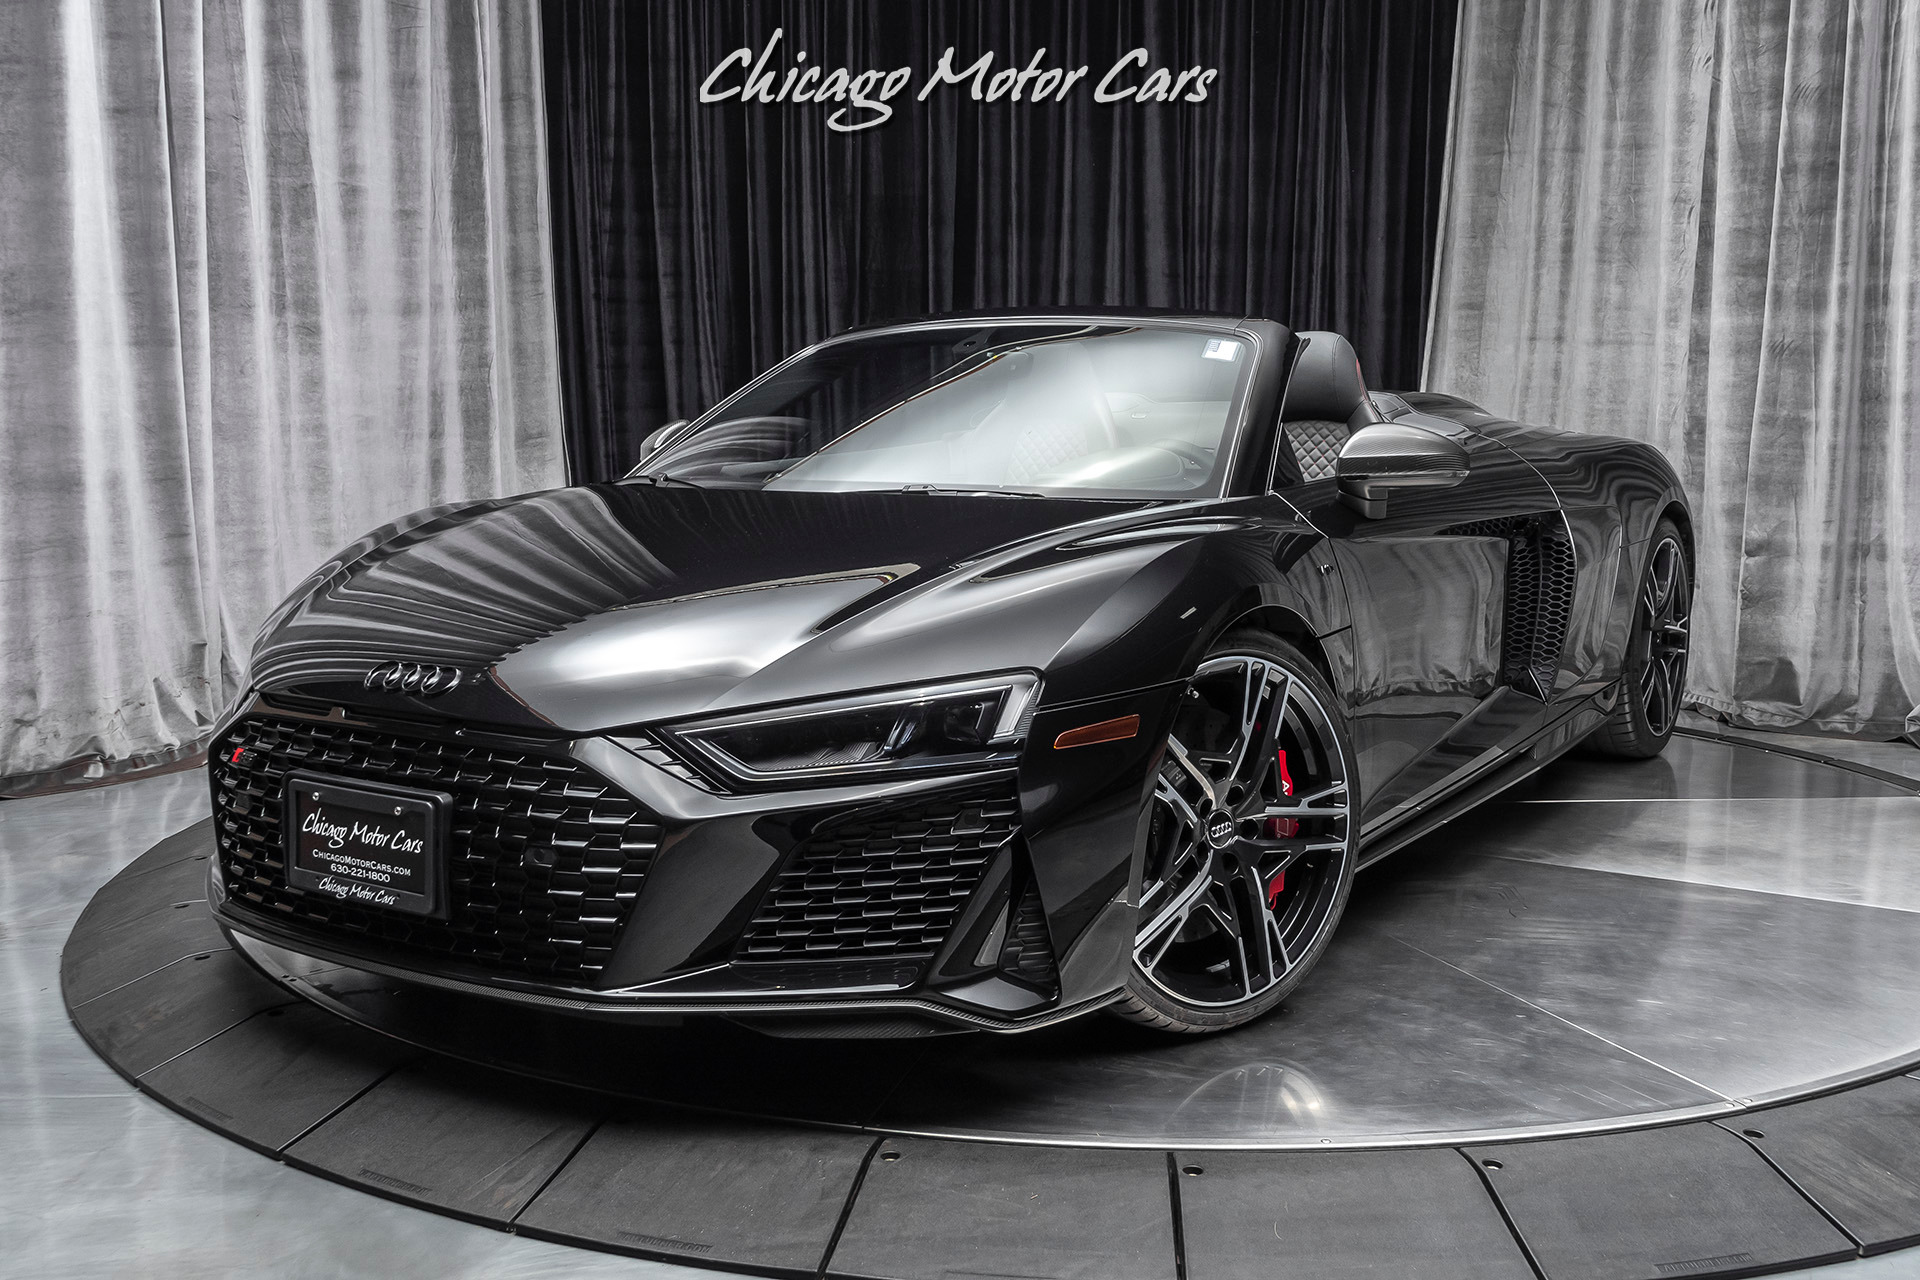 Used 2020 Audi R8 5 2 Quattro V10 Performance Convertible Spider For Sale Special Pricing Chicago Motor Cars Stock 17117